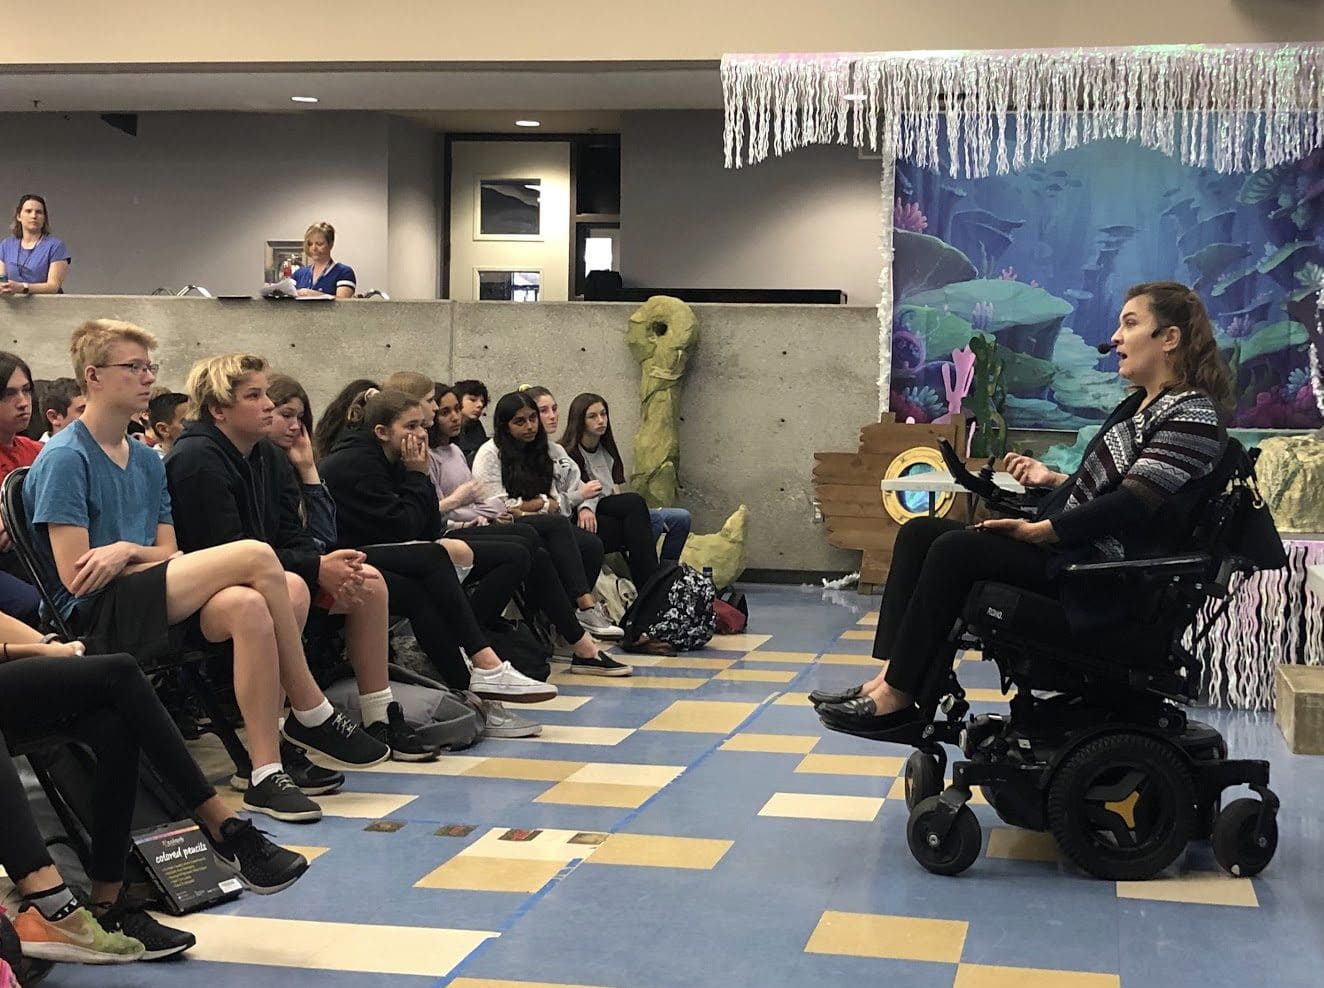 Margarita Elizondo in a power chair addressing a group of students in a classroom.